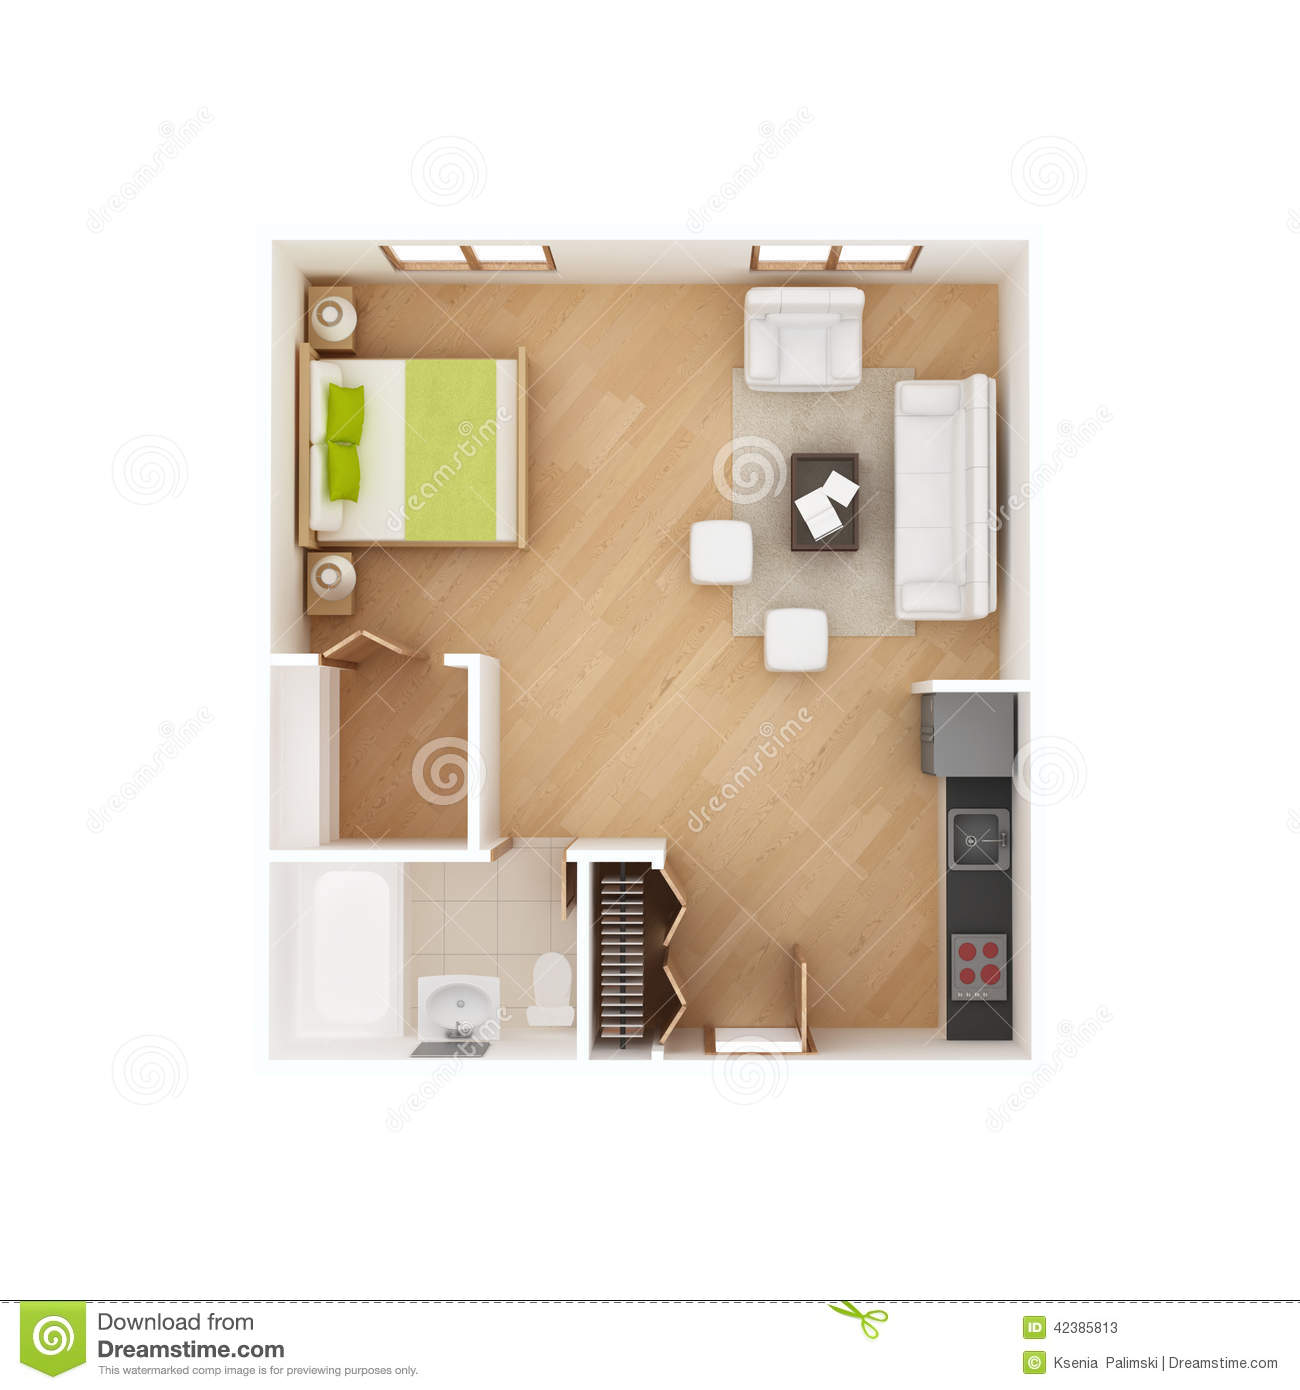 https://thumbs.dreamstime.com/z/studio-apartment-floor-plan-isolated-white-top-view-42385813.jpg